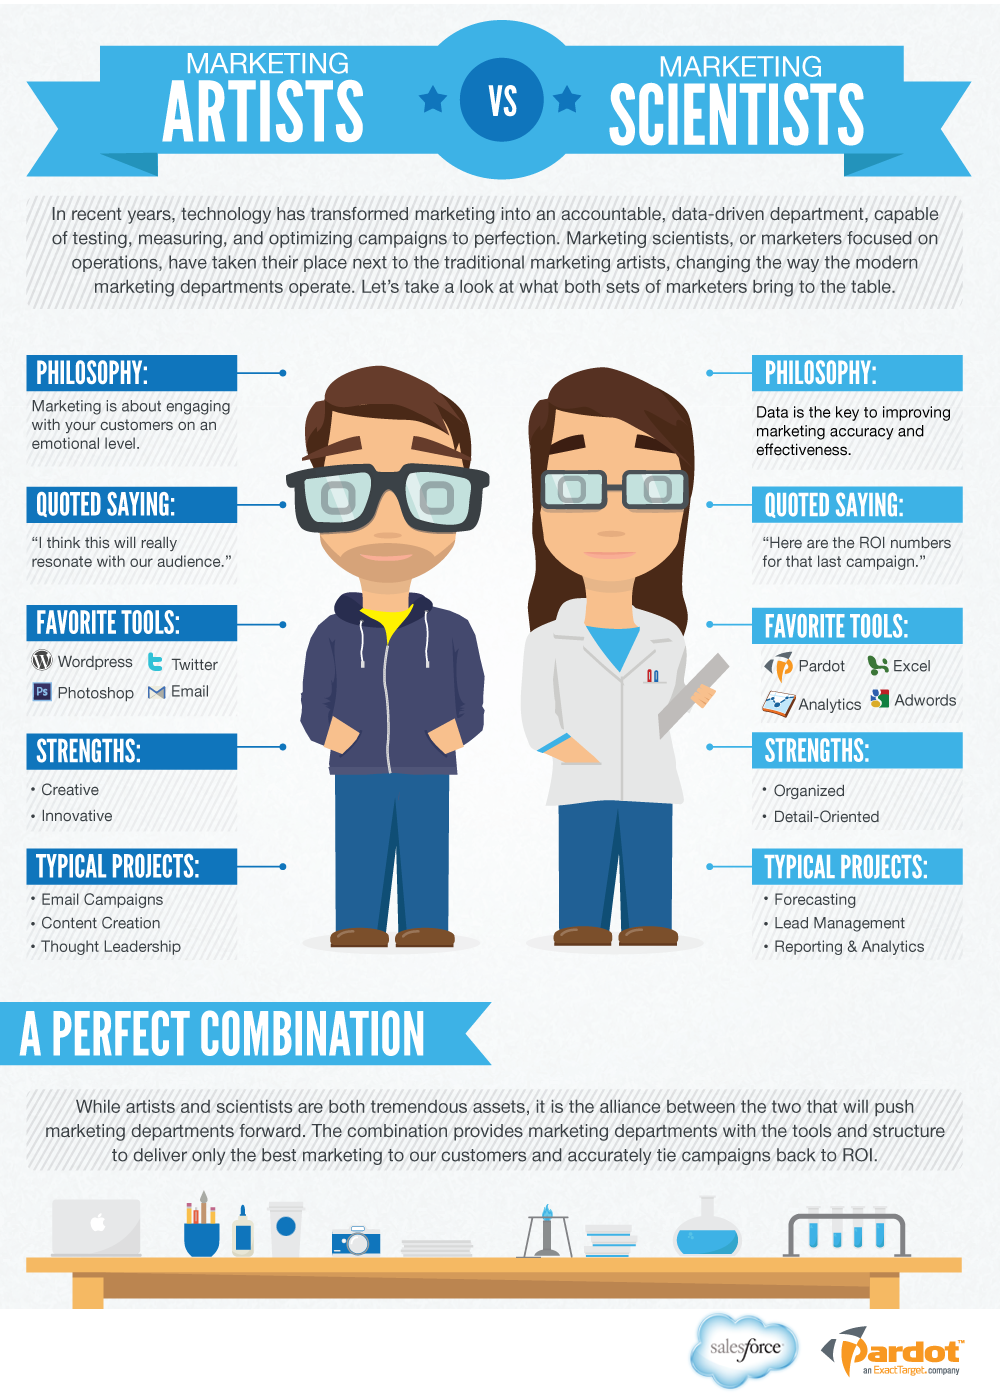 Artist vs. Scientist: Marketing Best Practices for the Modern Marketer Image